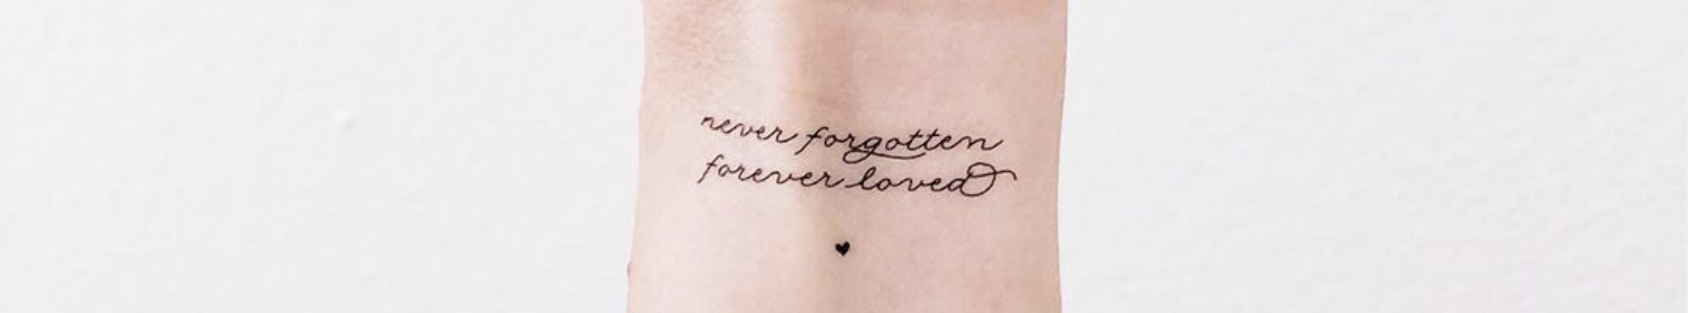 Miscarriage Tattoo- Never Forgotten Forever Loved